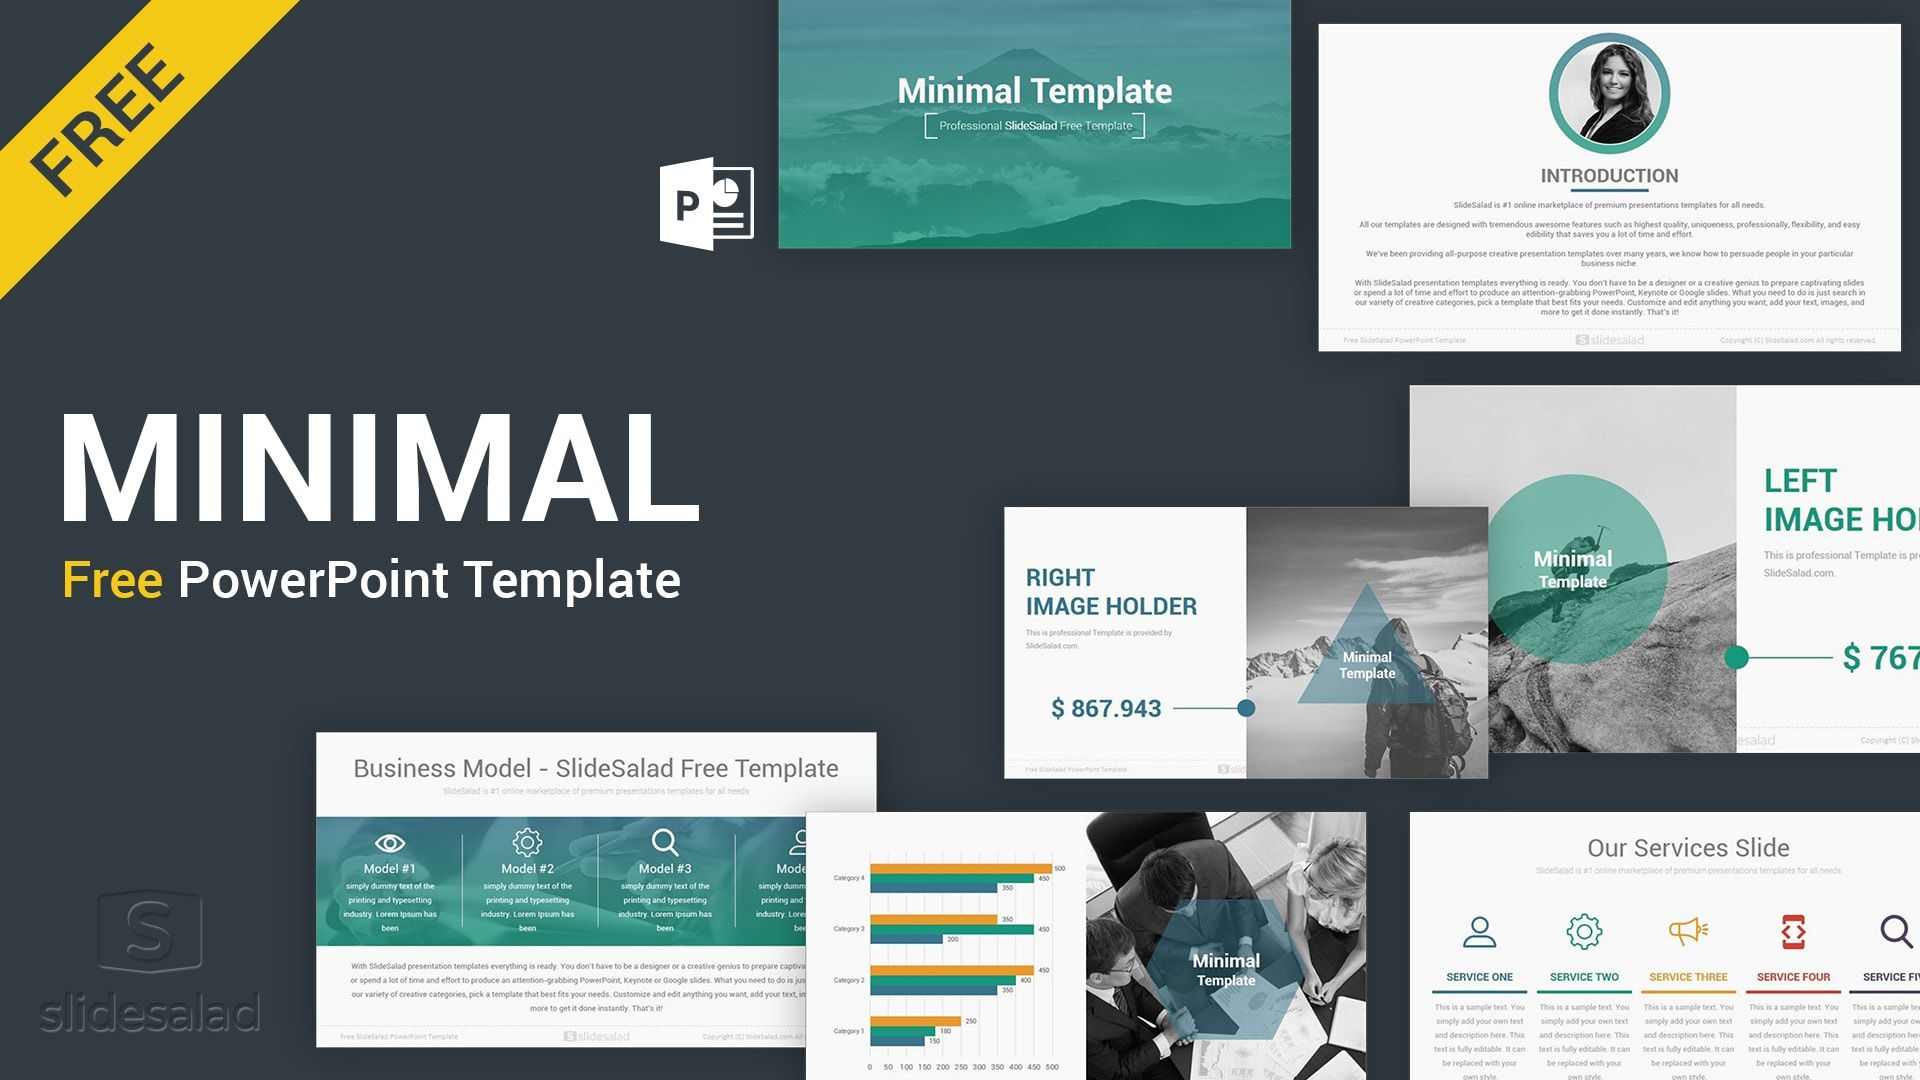 008 Incredible Ppt Template For Seminar Presentation Free Download Inspiration Full